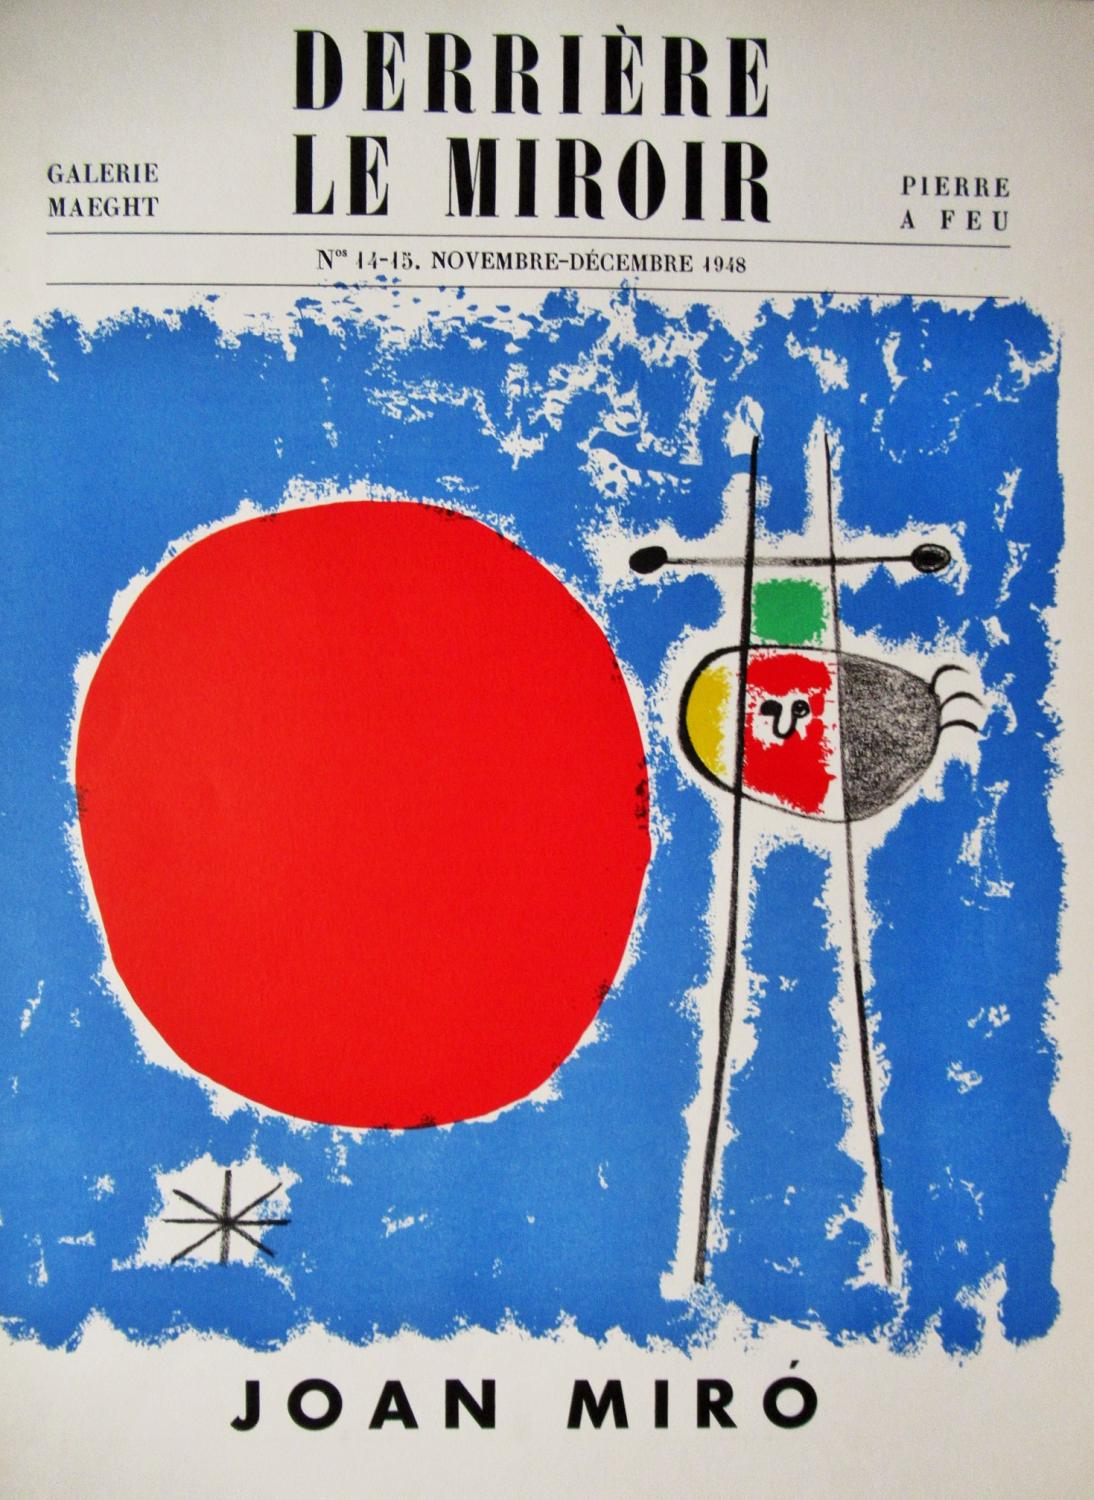 DERRIERE_LE_MIROIR_14-15_(COVER_ONLY)_JOAN_MIRO_[Very_Good]